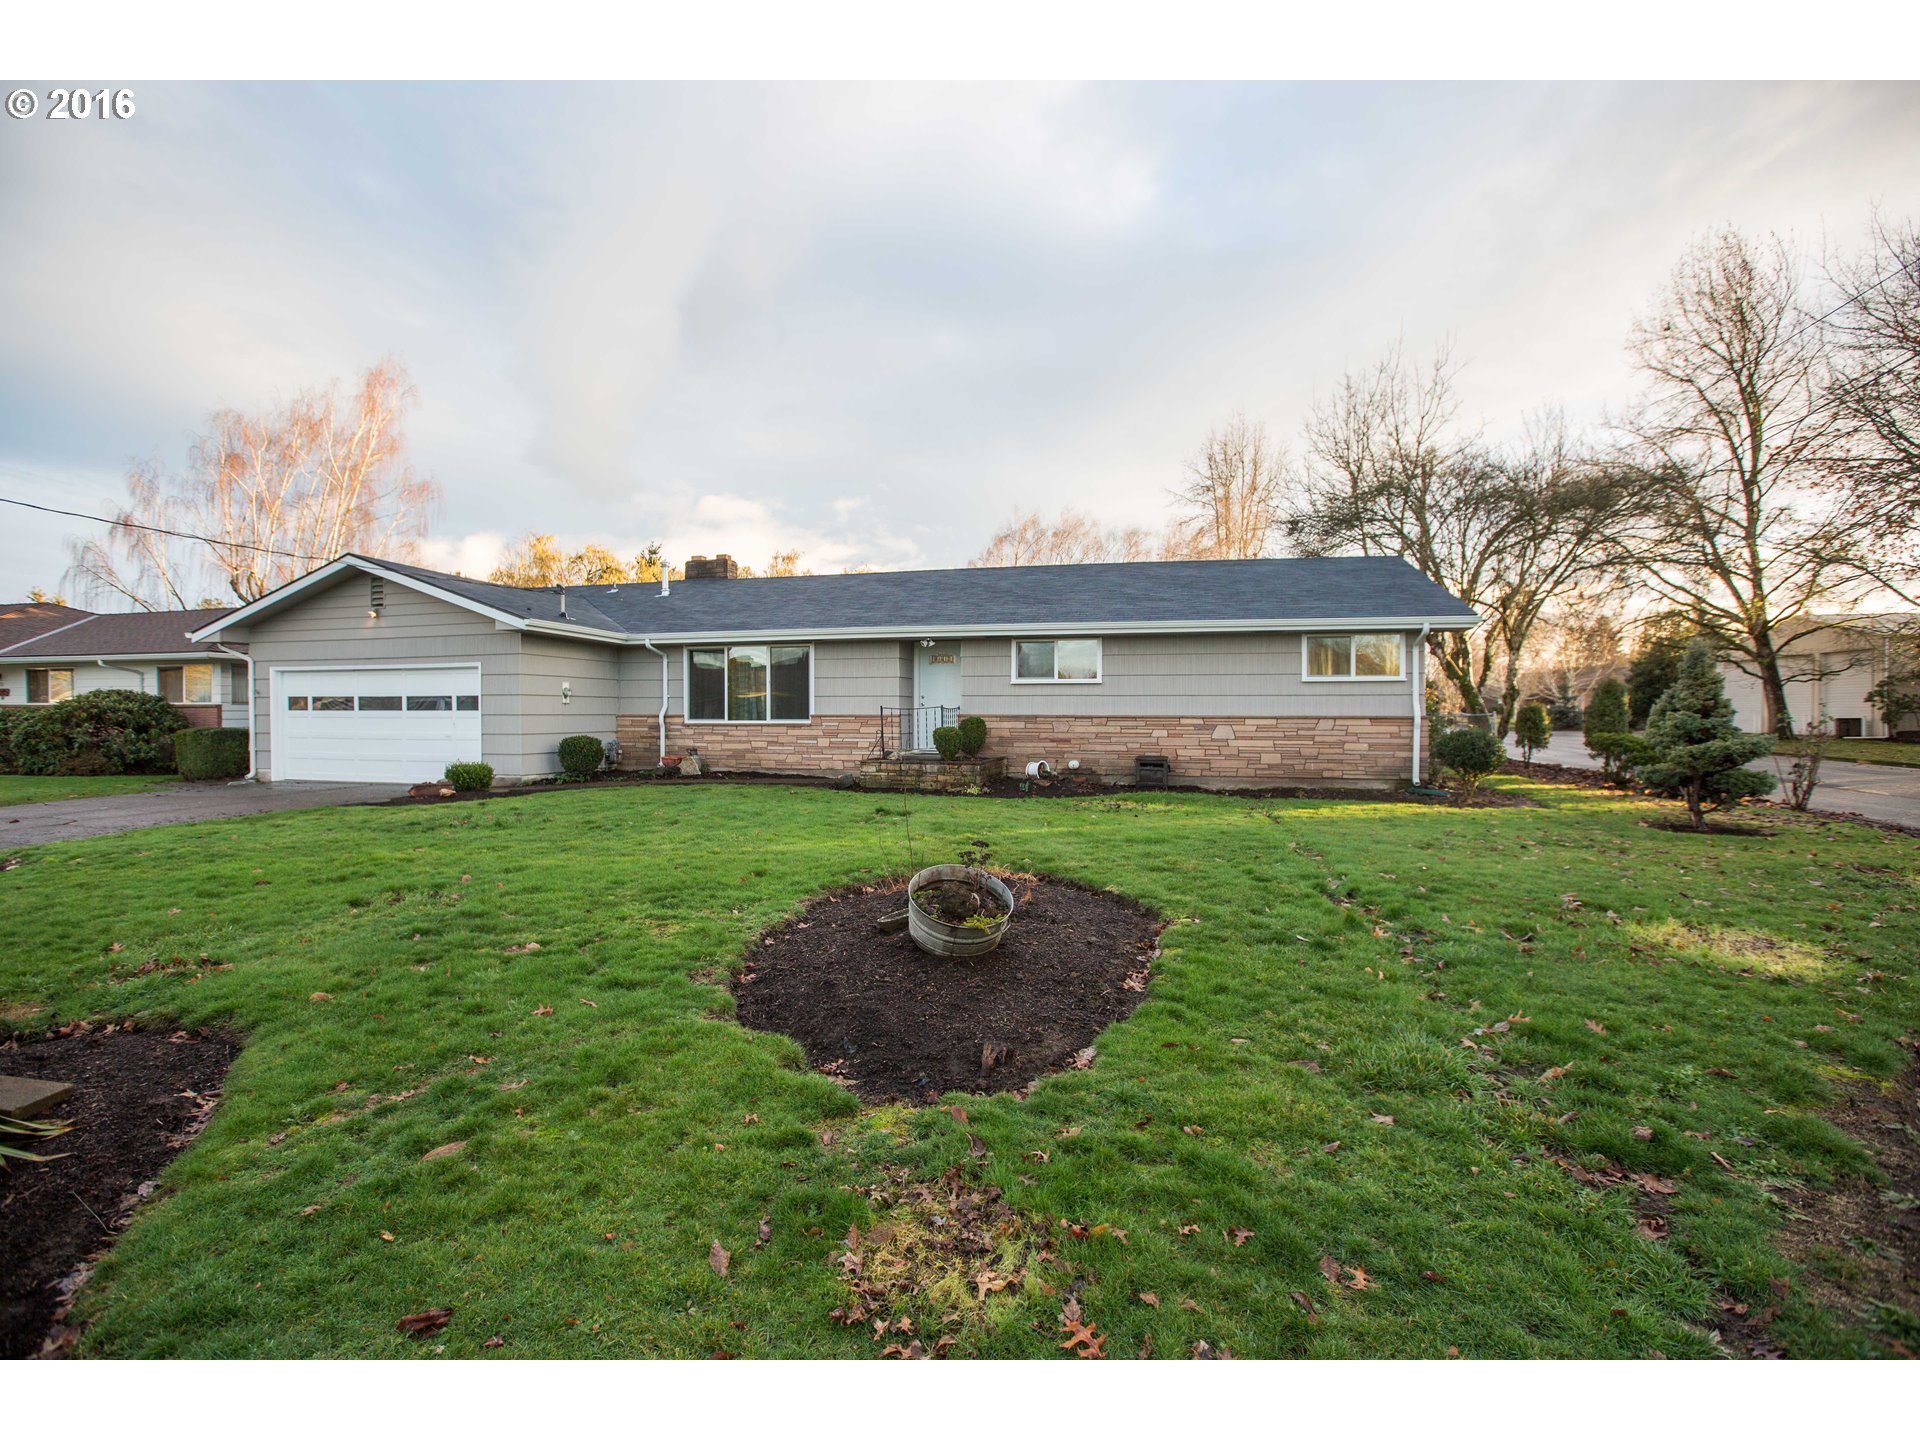 4110 Glendale Ave, Salem, OR